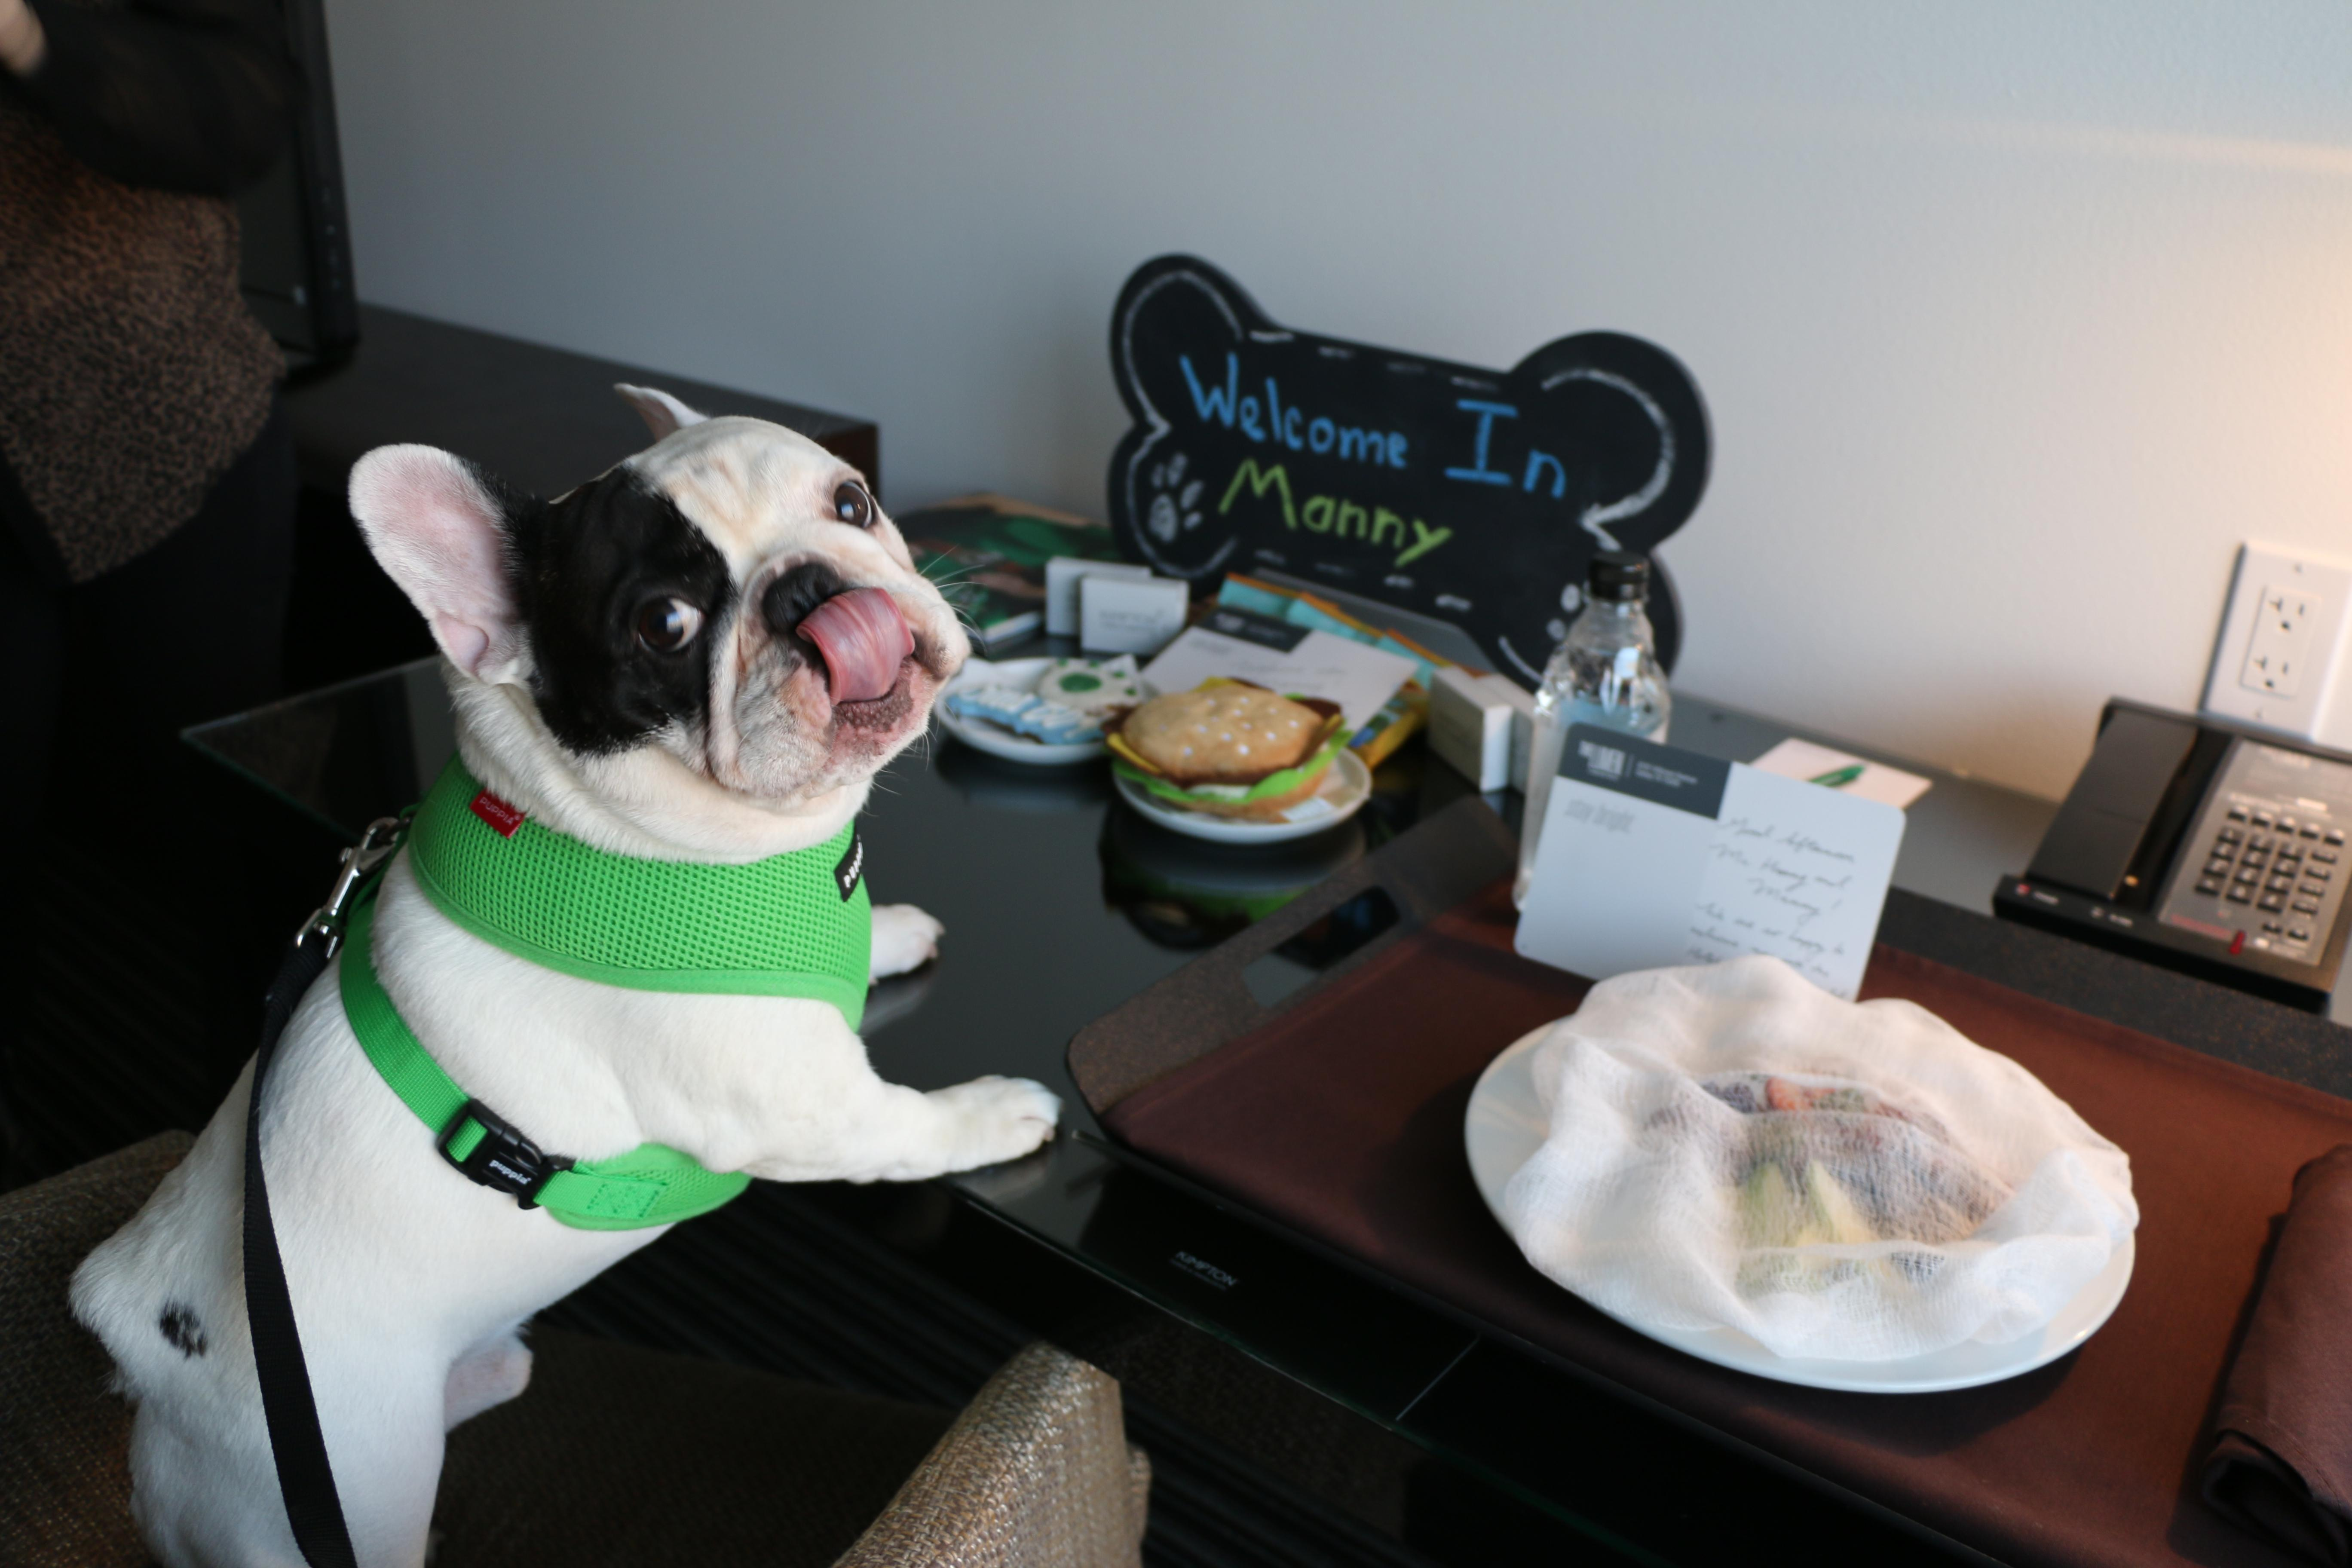 Image source: Manny the Frenchie